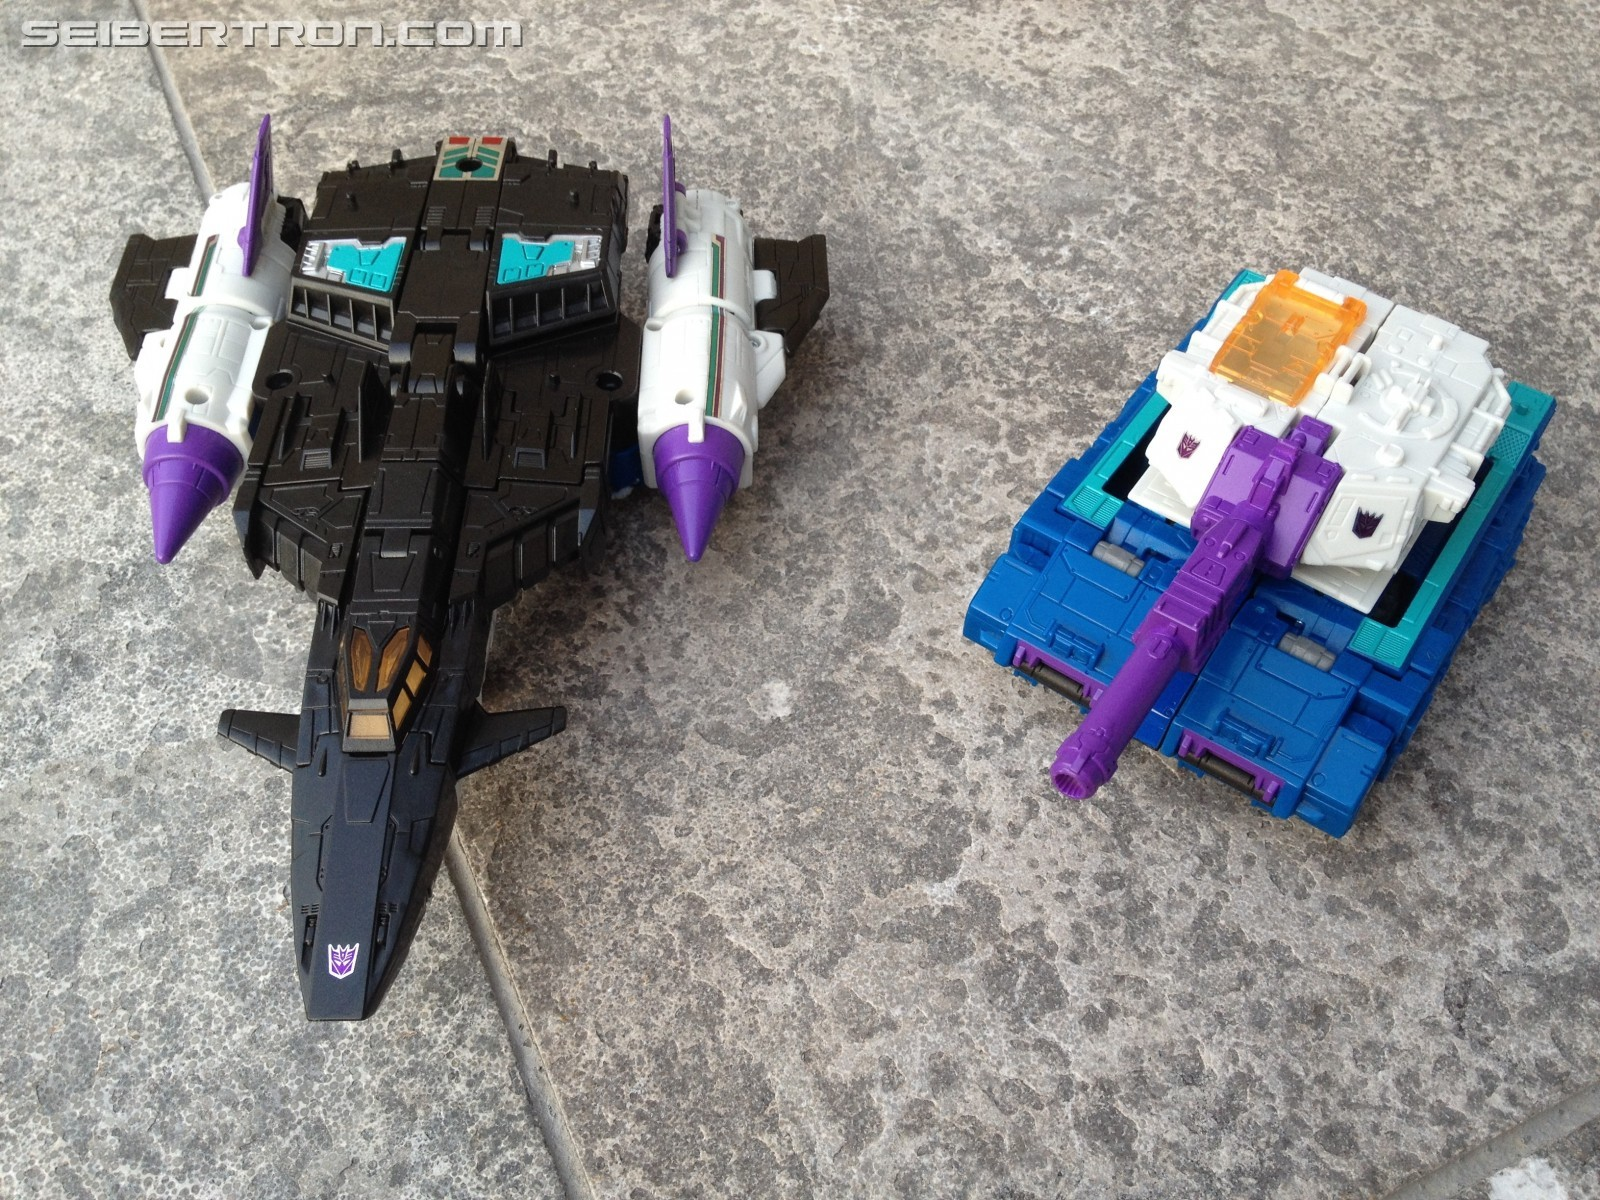 Transformers News: Pictorial Review of Transformers Titans Return Overlord With Images of all Phase Sixers Reunited